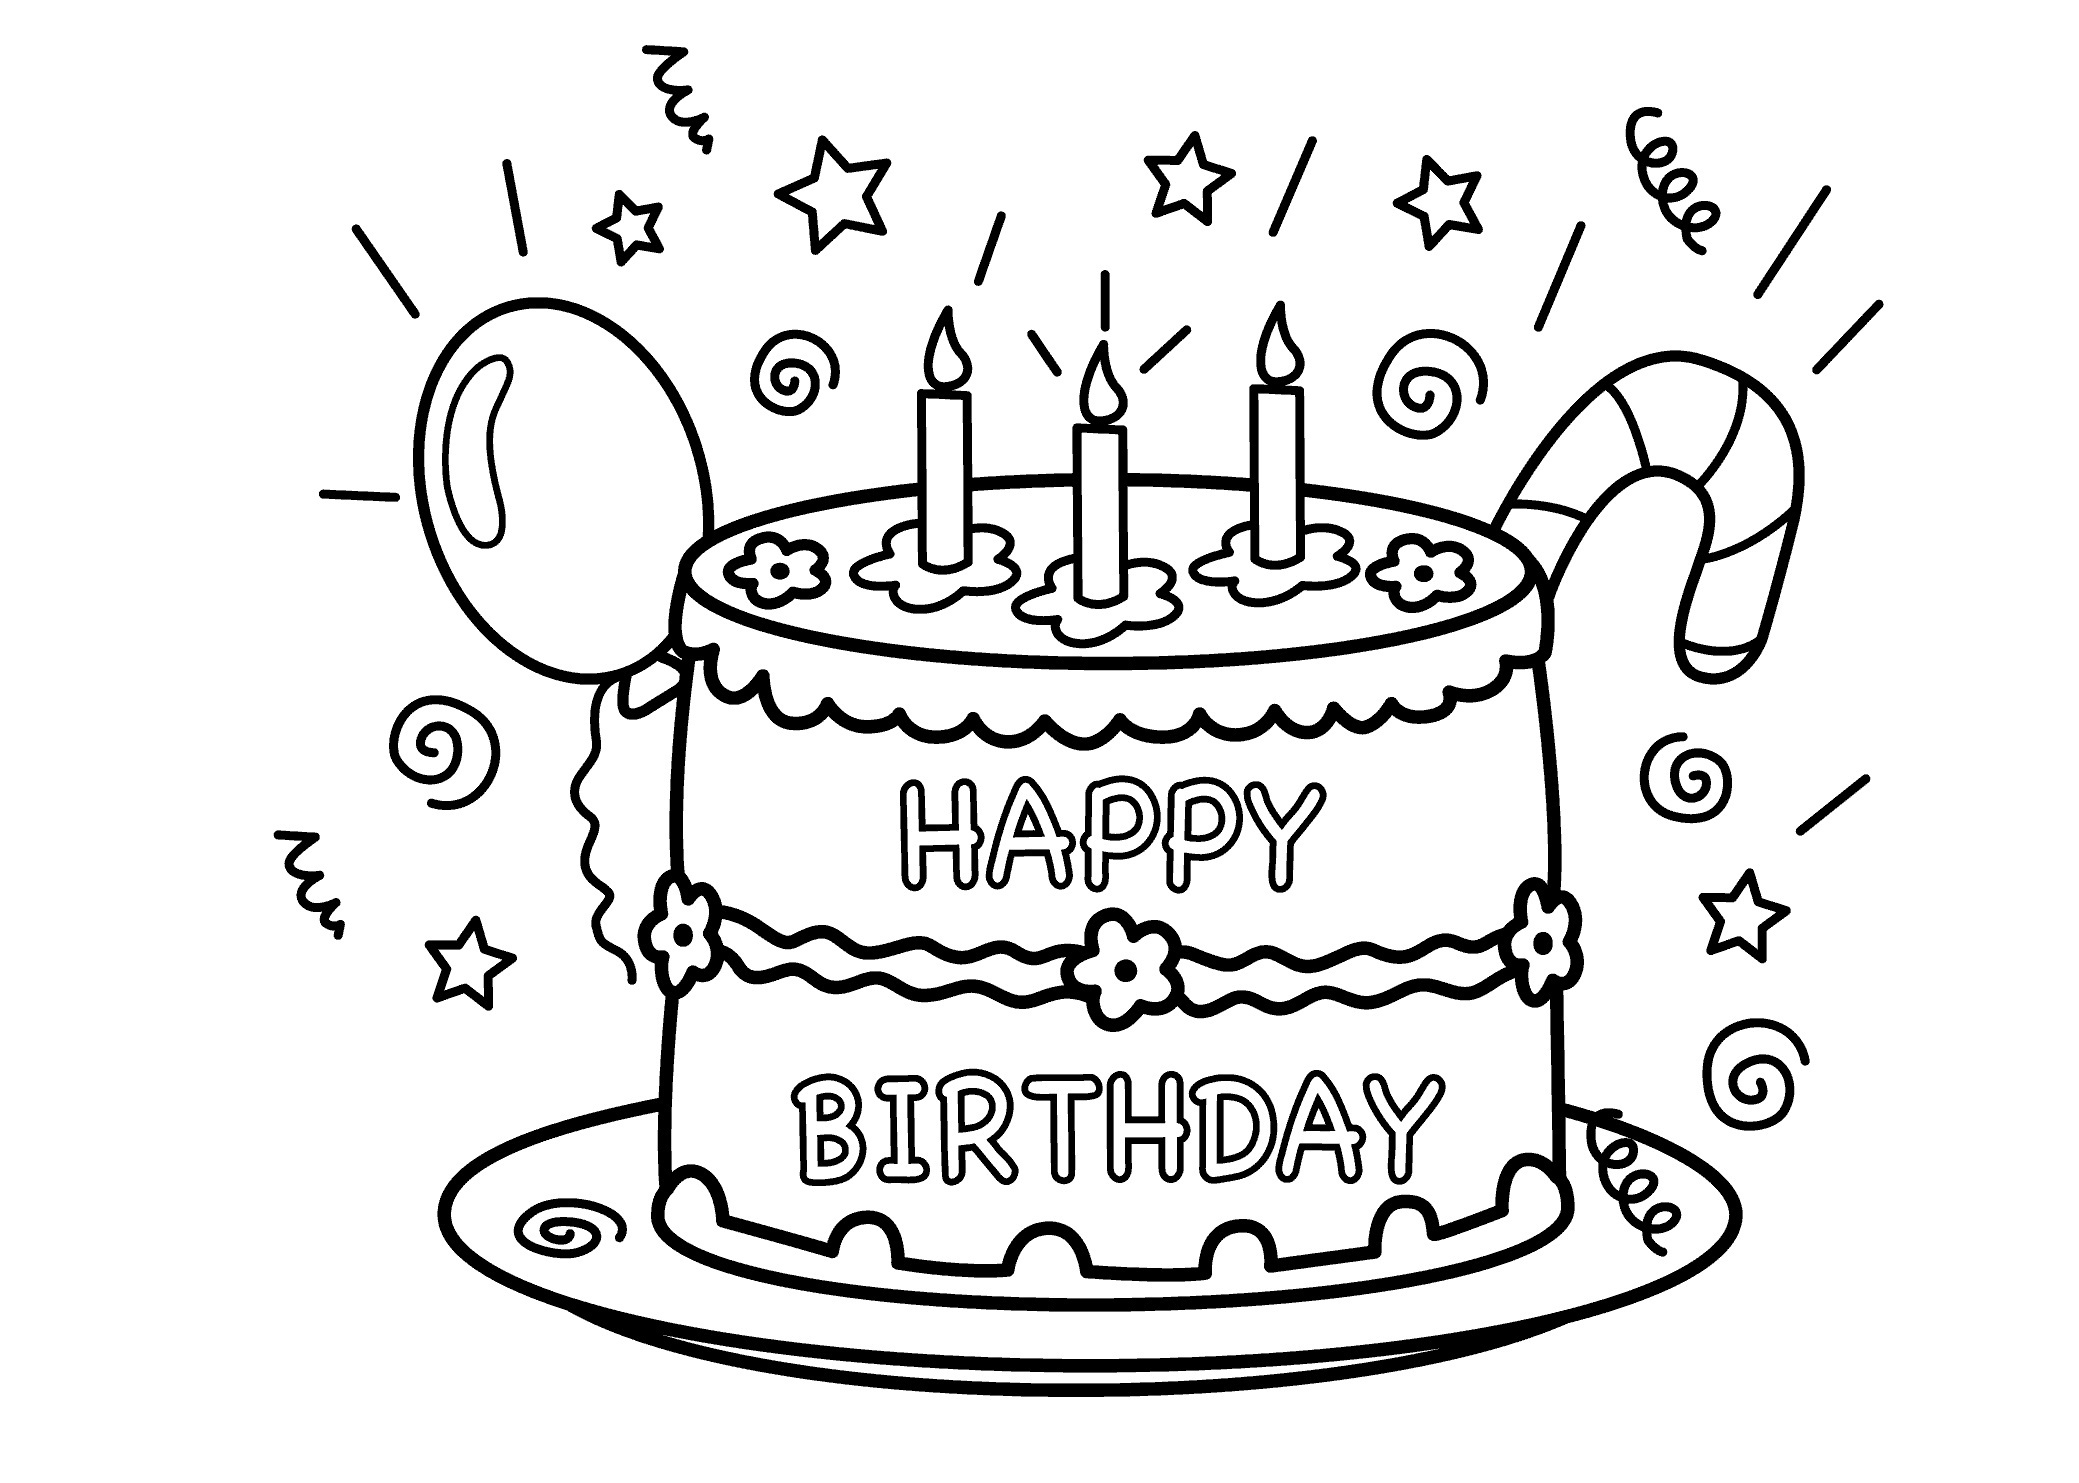 birthday cake coloring birthday cake coloring pages to download and print for free coloring cake birthday